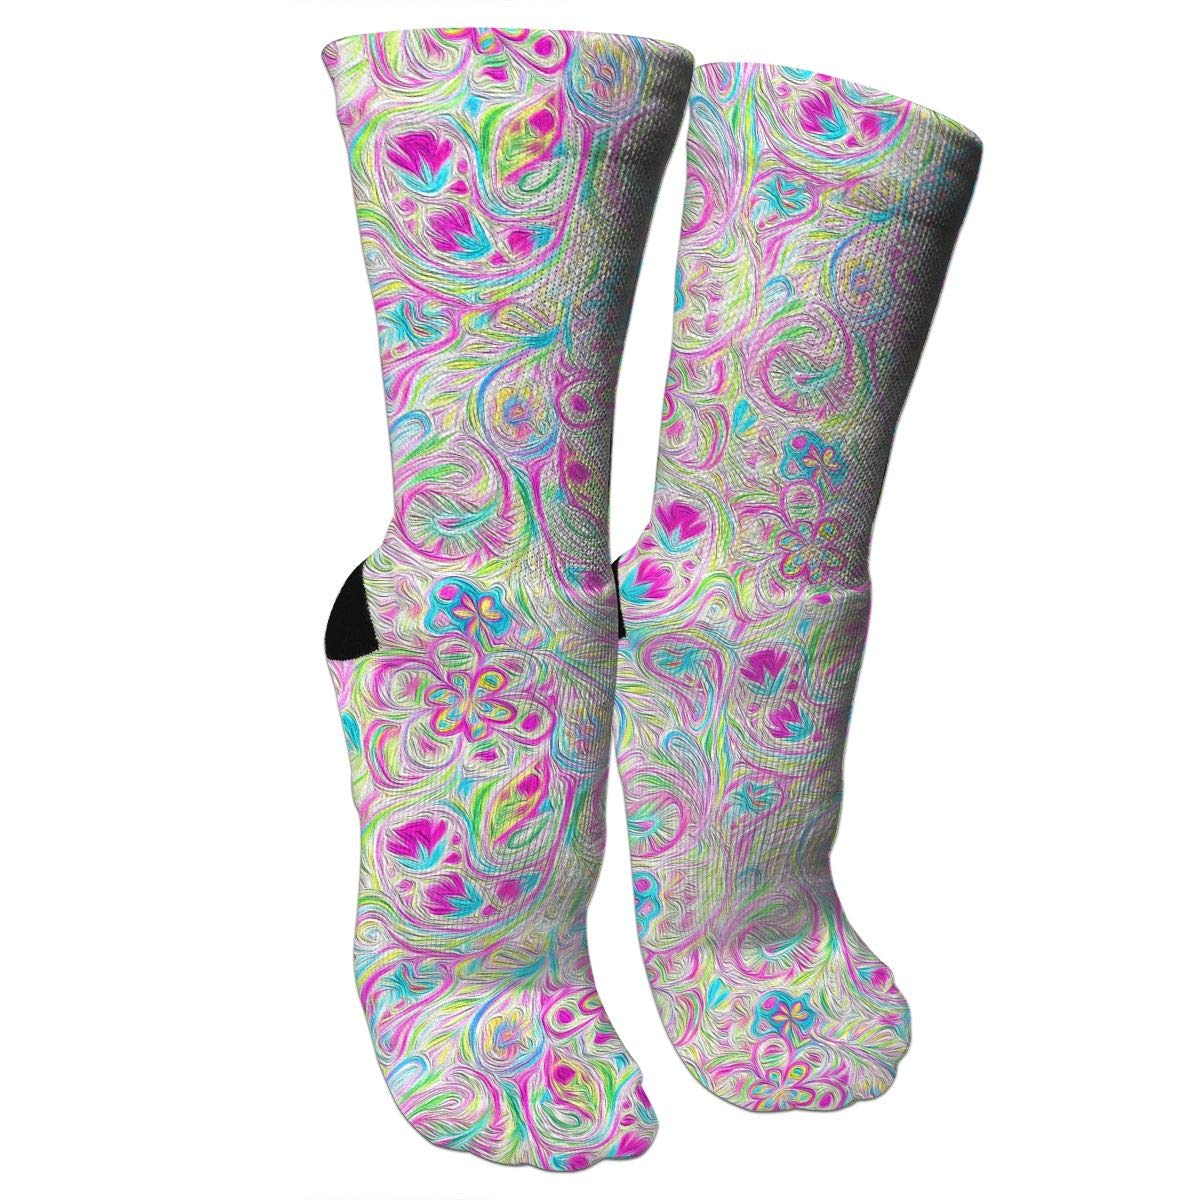 Paisley Watercolor Brights Casual Cotton Crew Socks Cute Funny Sock,great For Sports And Hiking